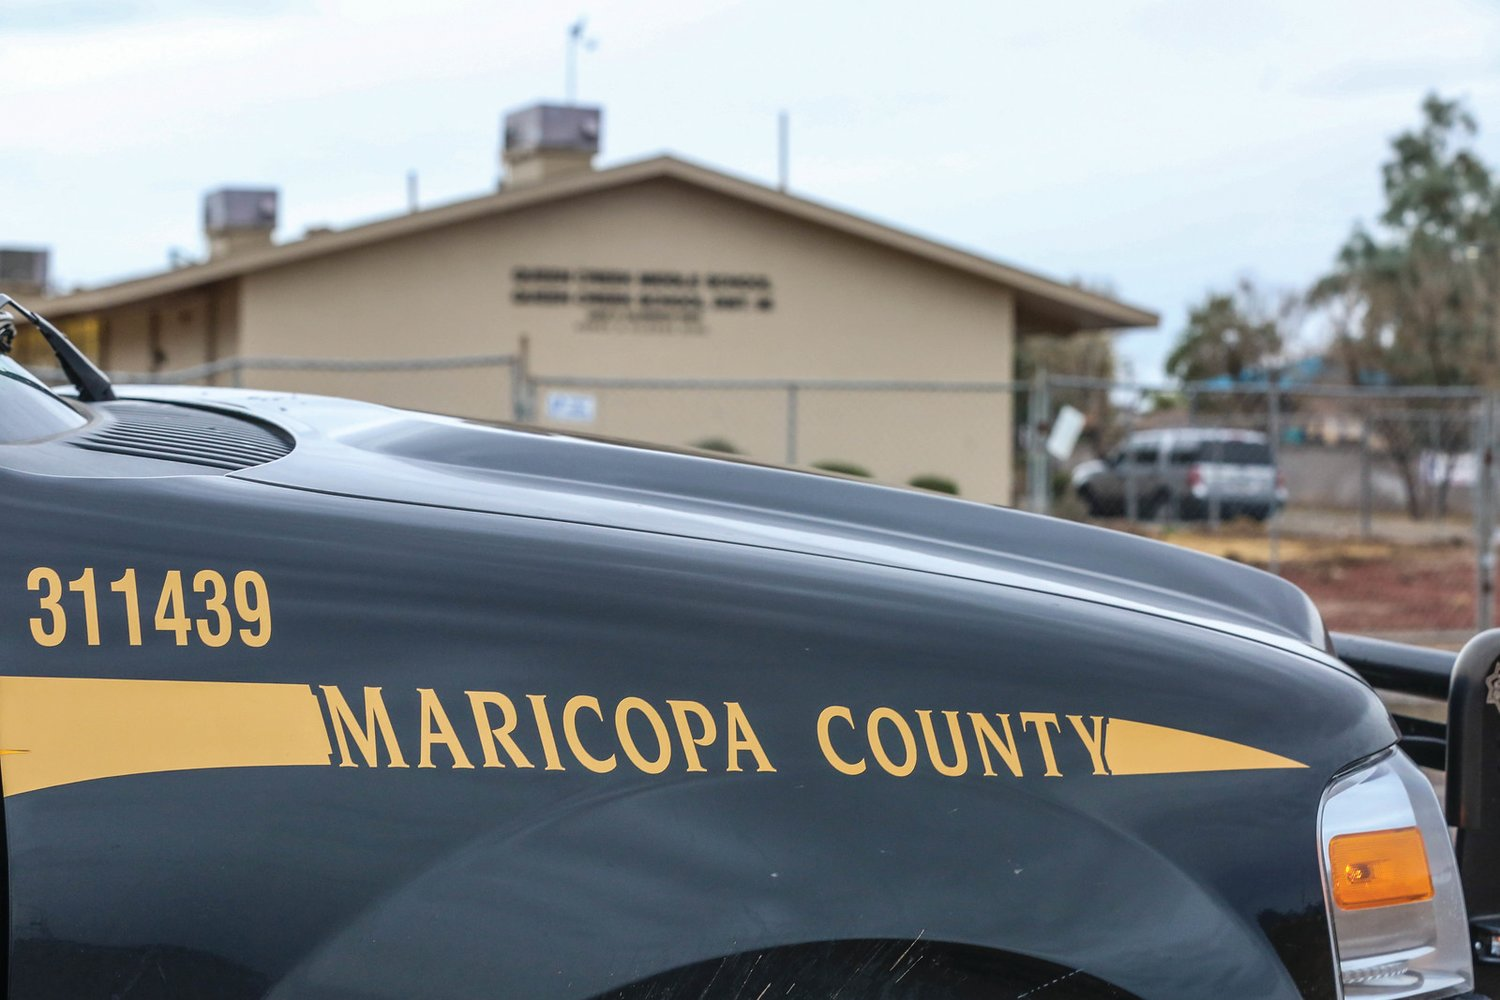 A total of 362 adults and 68 juveniles were arrested in 2019 by Maricopa County Sheriff's Office in Queen Creek.